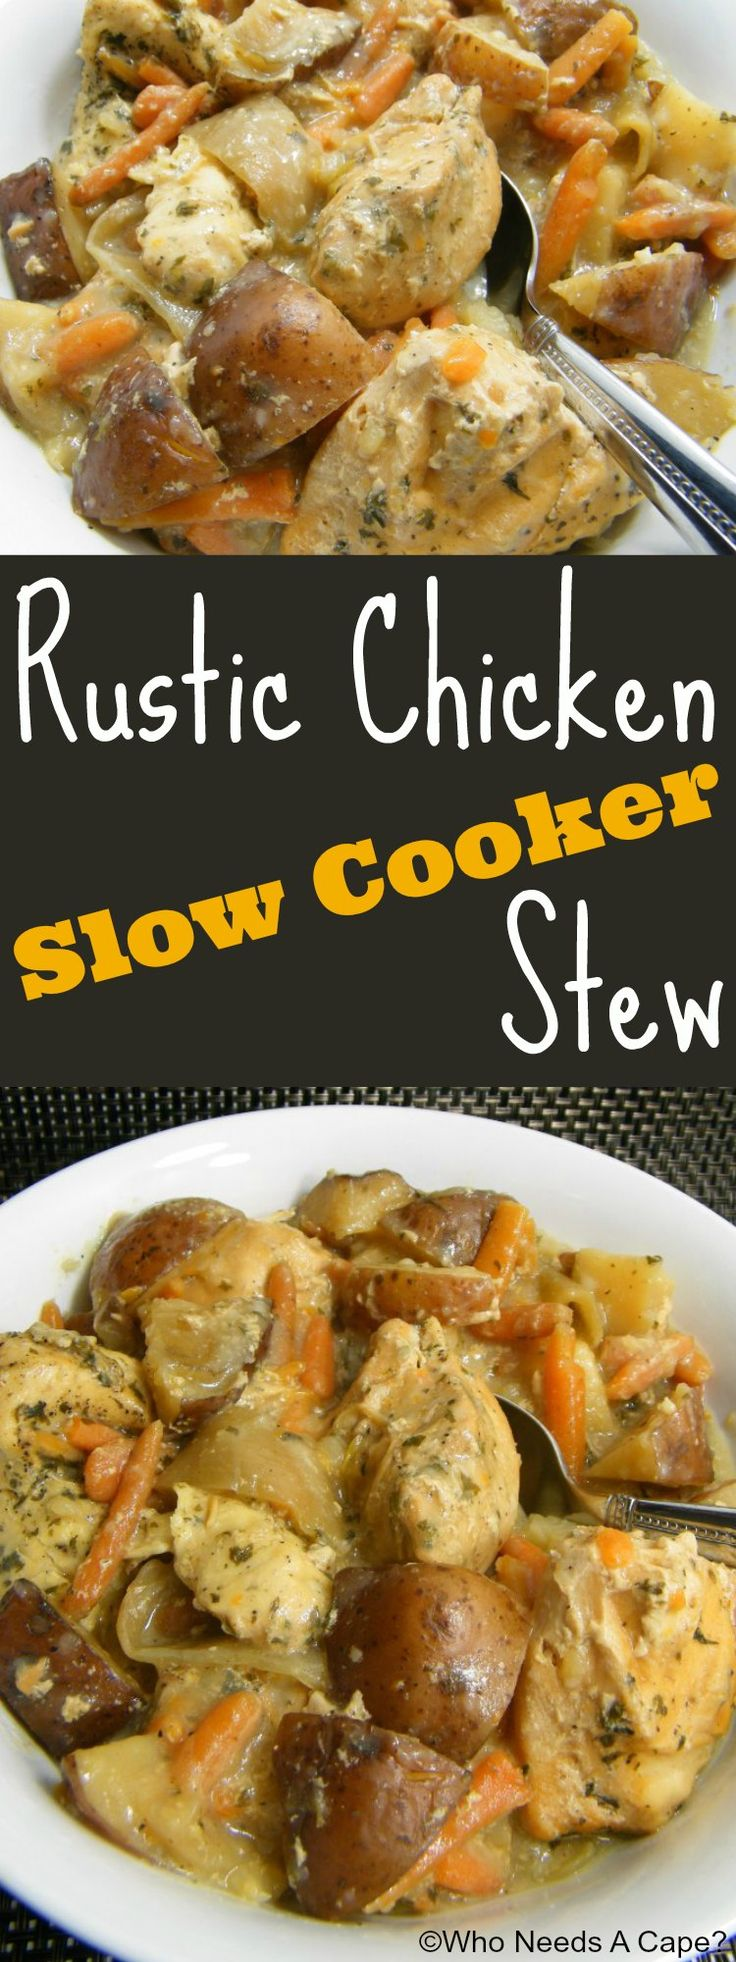 Rustic Chicken Slow Cooker Stew